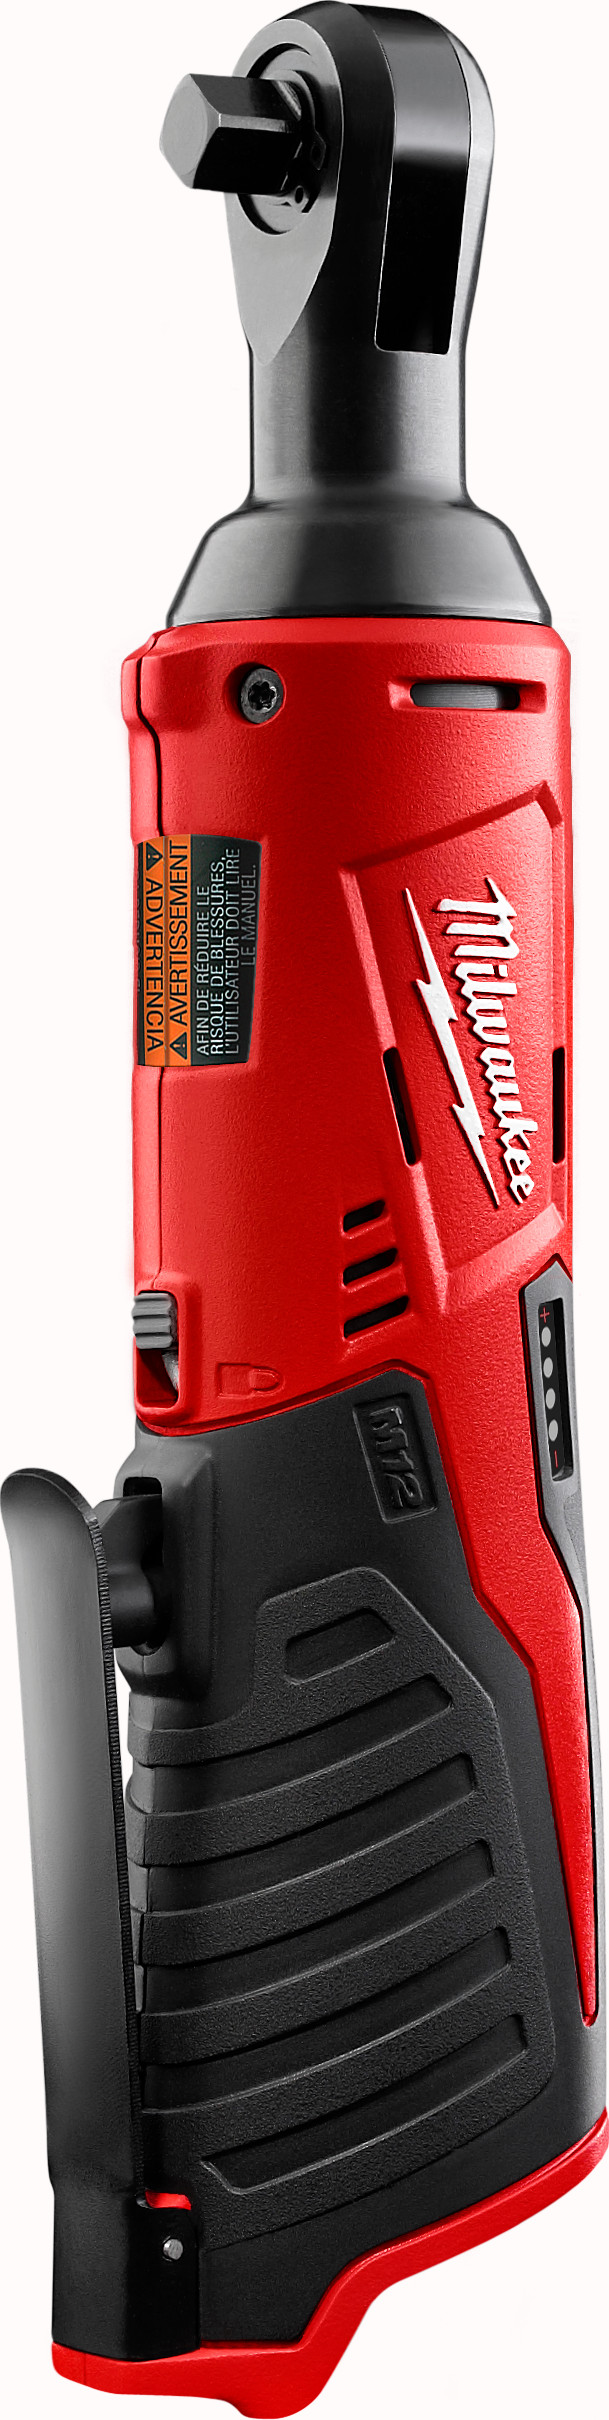 Milwaukee® M12™ 2456-21 Double Insulated Cordless Ratchet Kit, 1/4 in Drive, 30 ft-lb Torque, 250 rpm Speed, 12 VDC, Lithium-Ion Battery, 10-3/4 in OAL